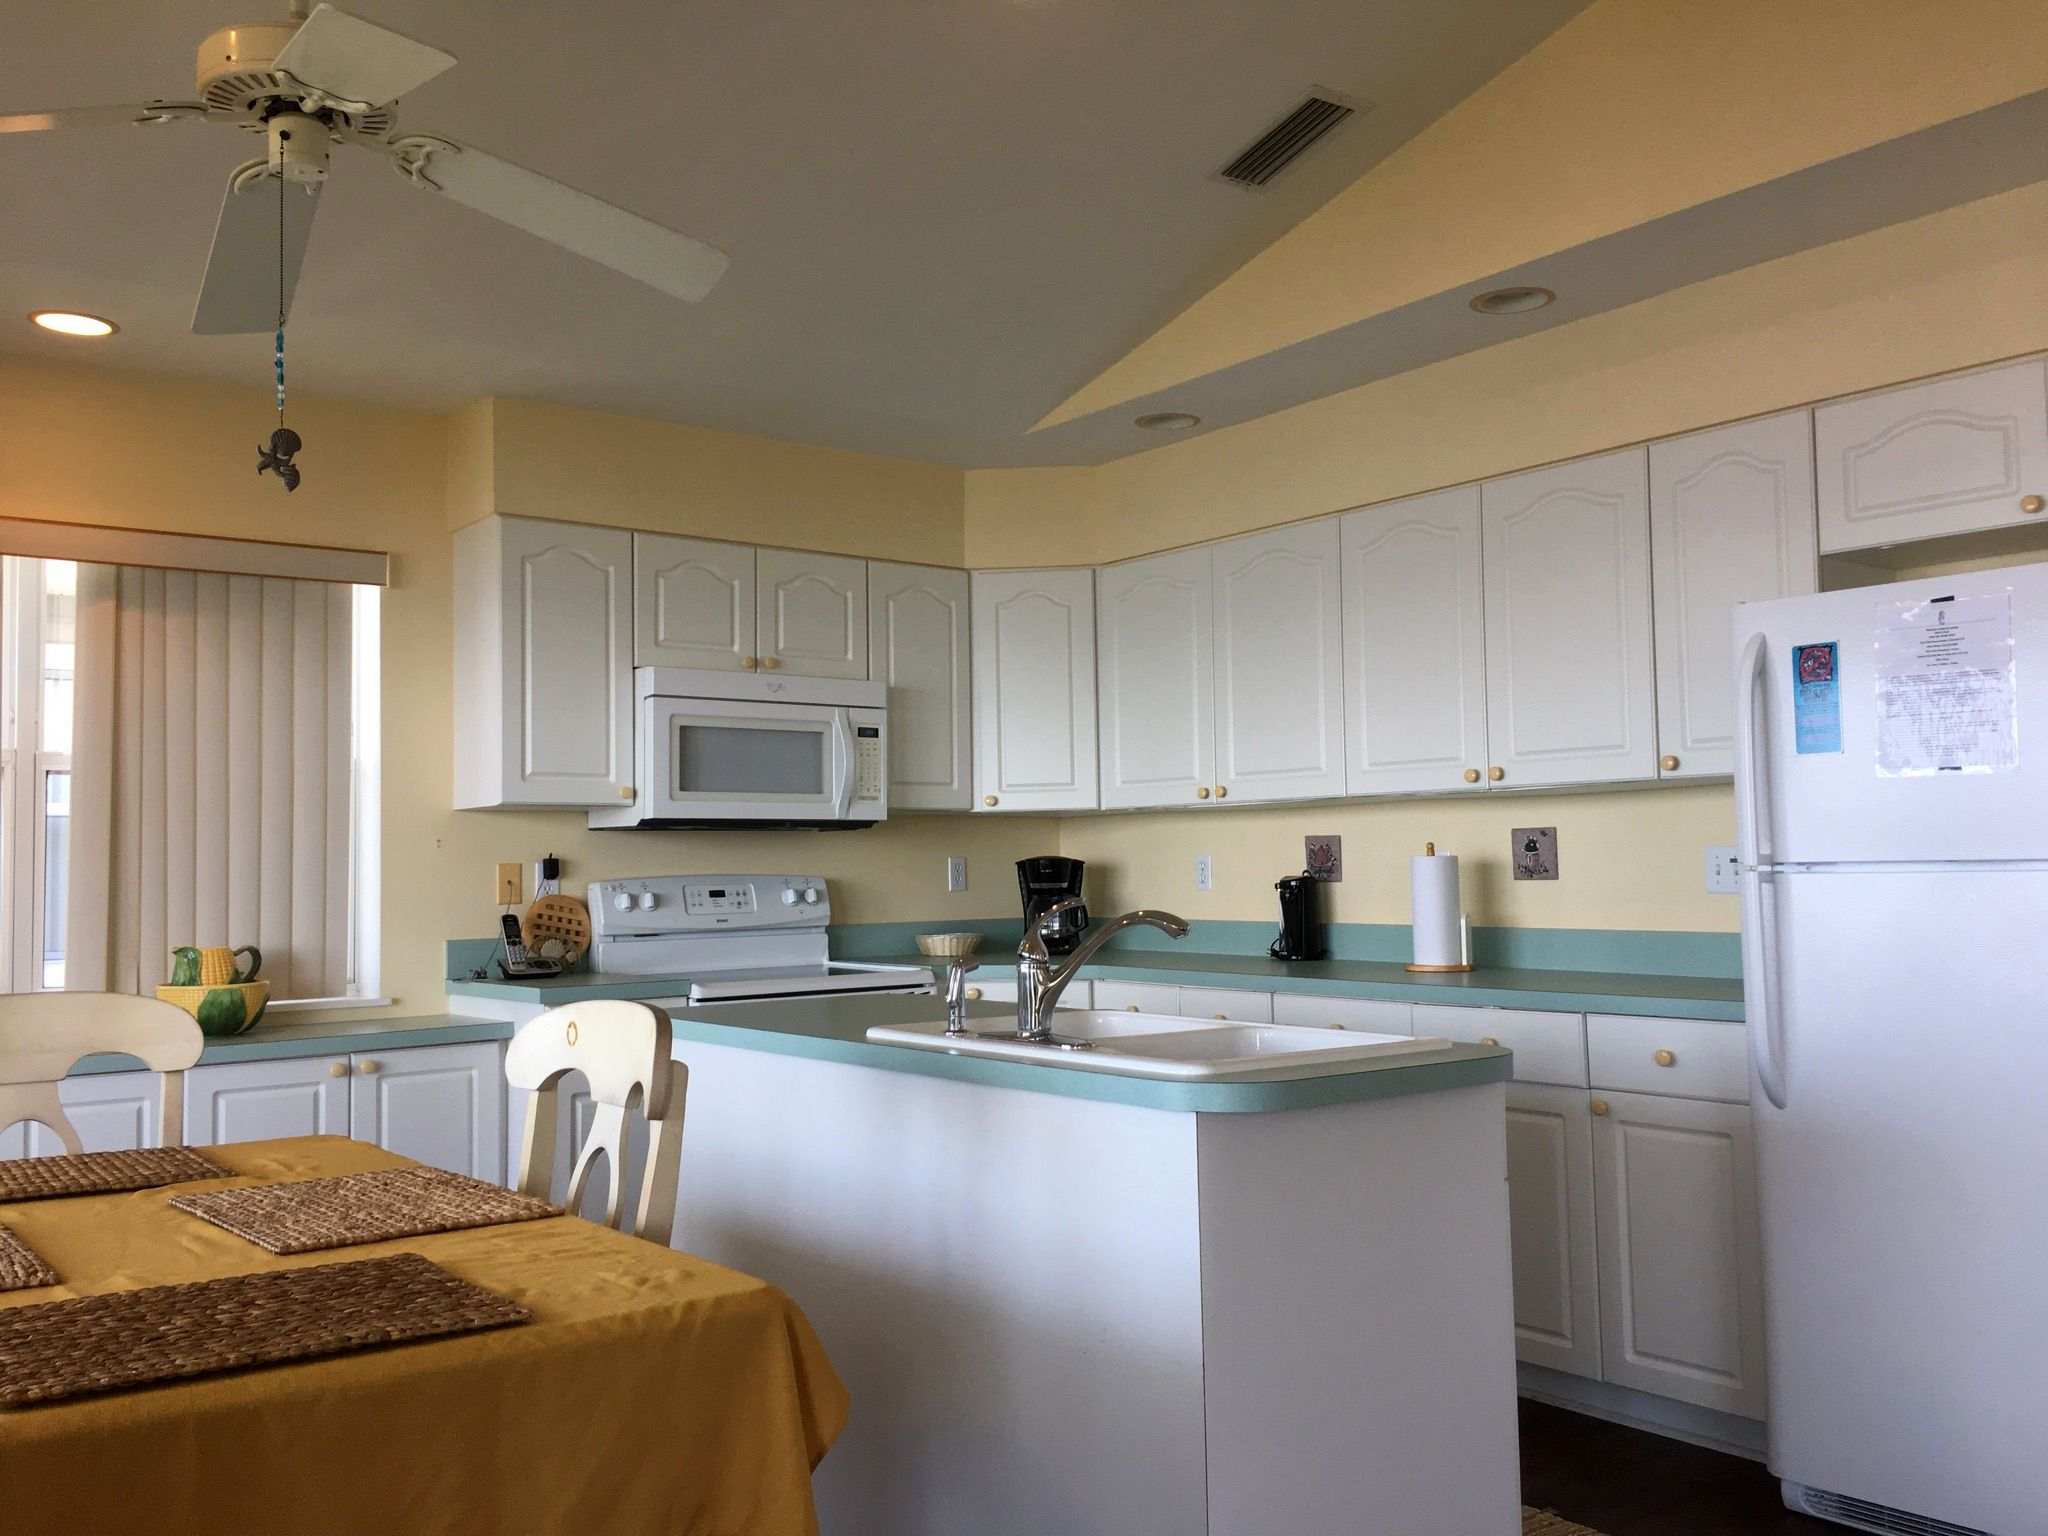 Vacation Condo Rentals in Cedar Key FL